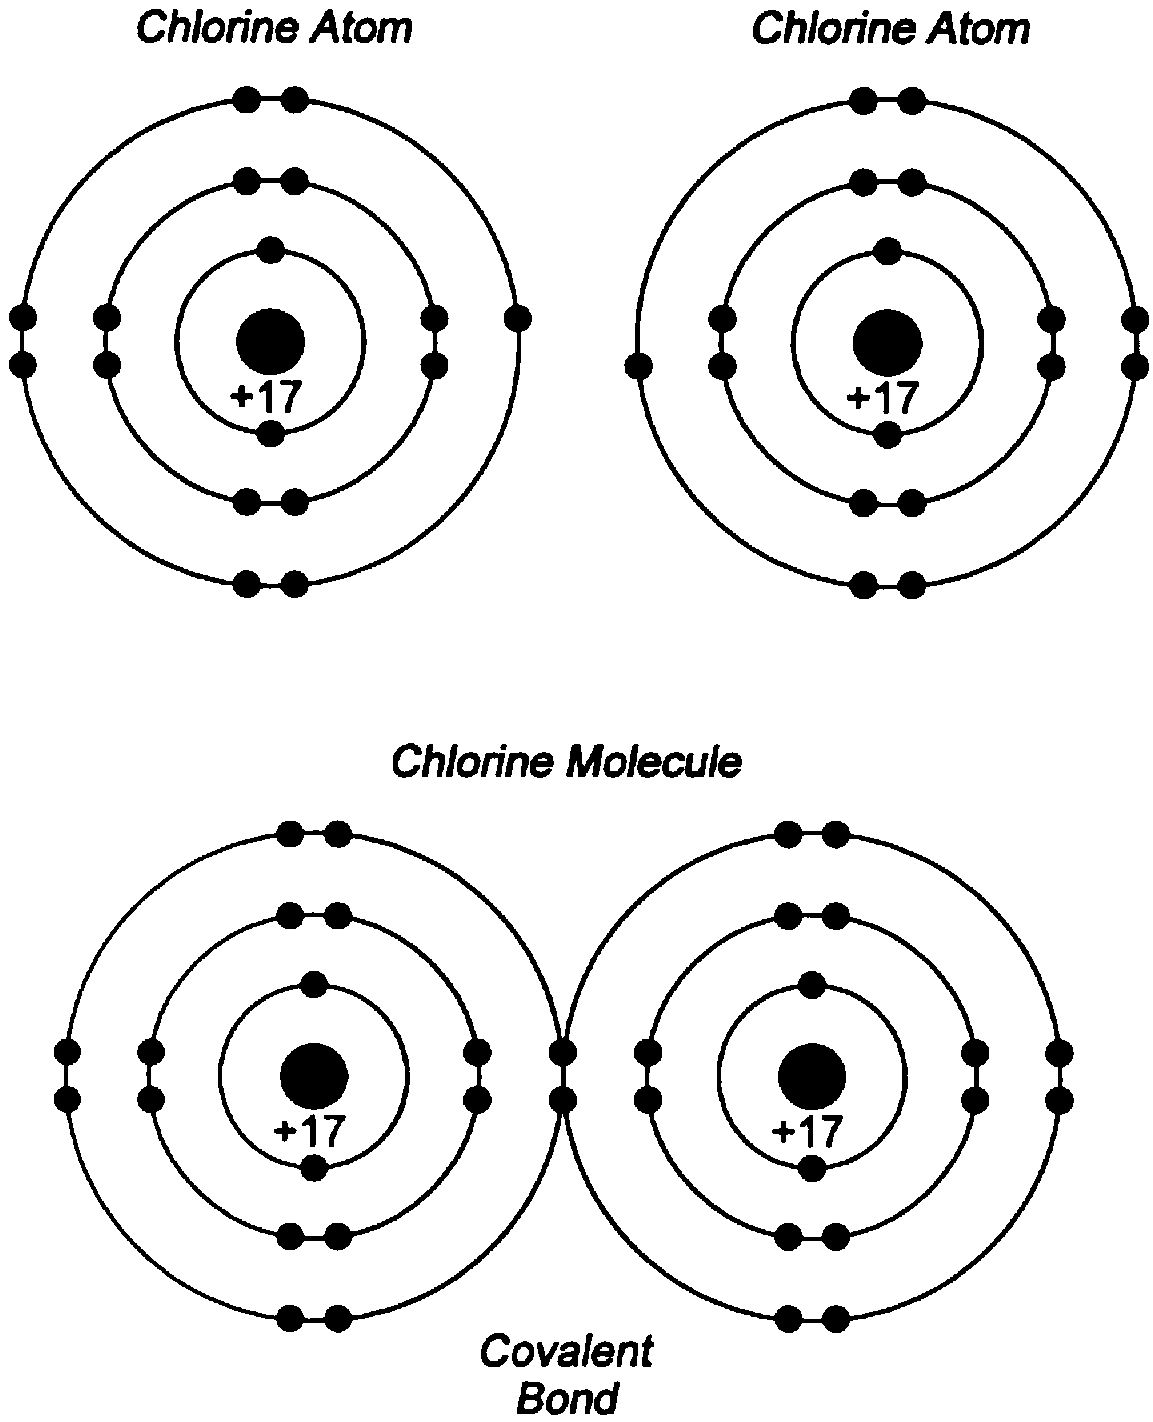 Electronics And Engineering Lab 2010 In A Stripboard Layout For The Um3561 Sound Effect Circuit Shown Chlorine Molecule Forms Covalent Bond